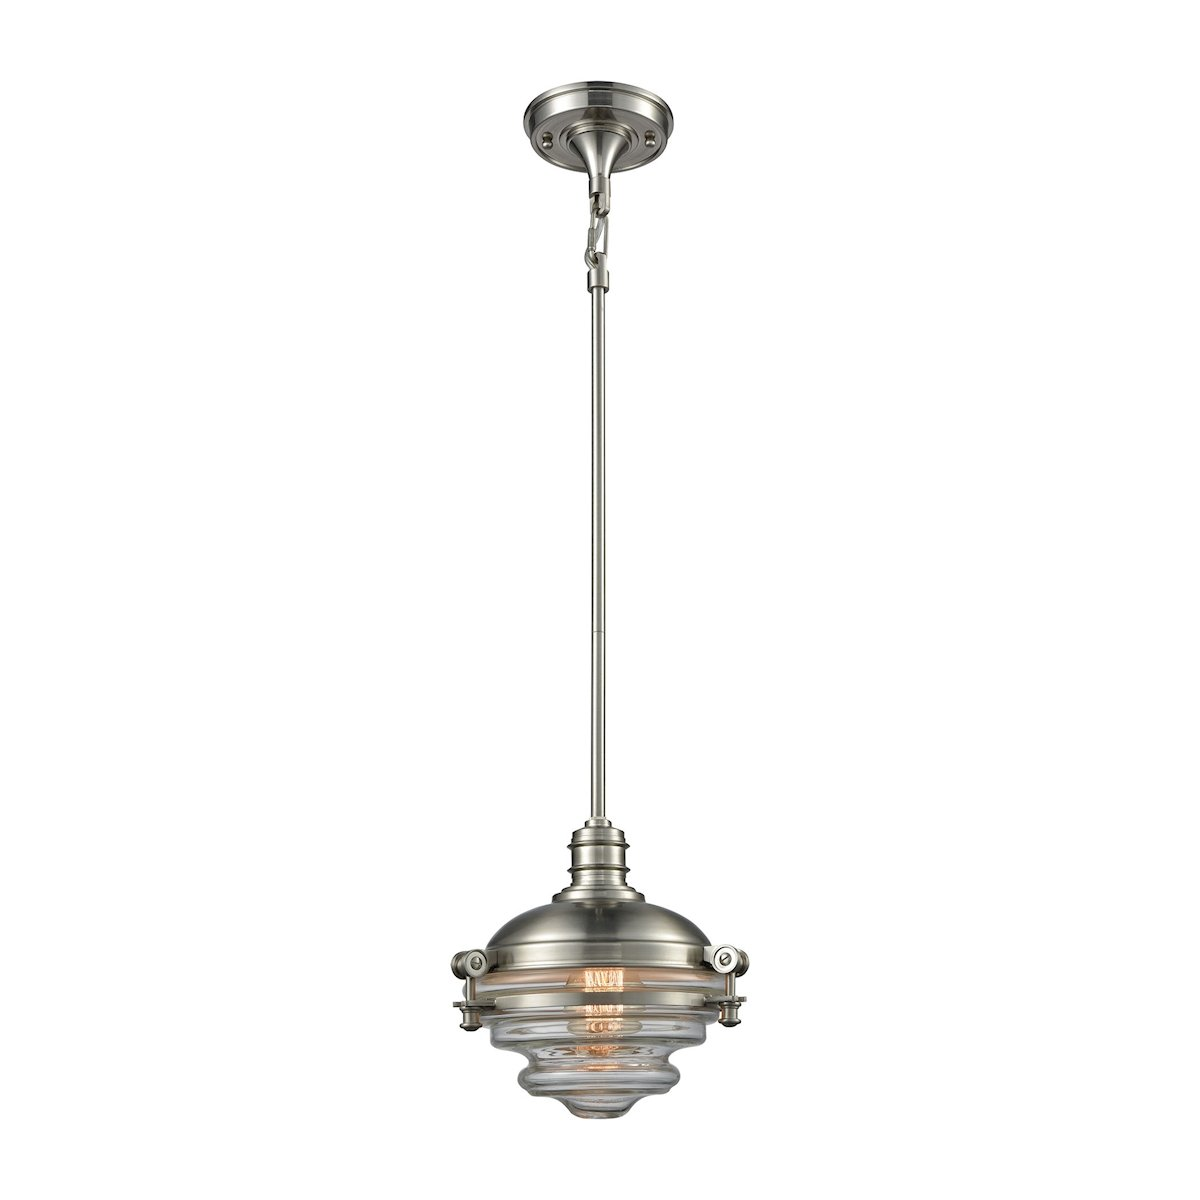 riley 1 light pendant in satin nickel with clear glass by elk